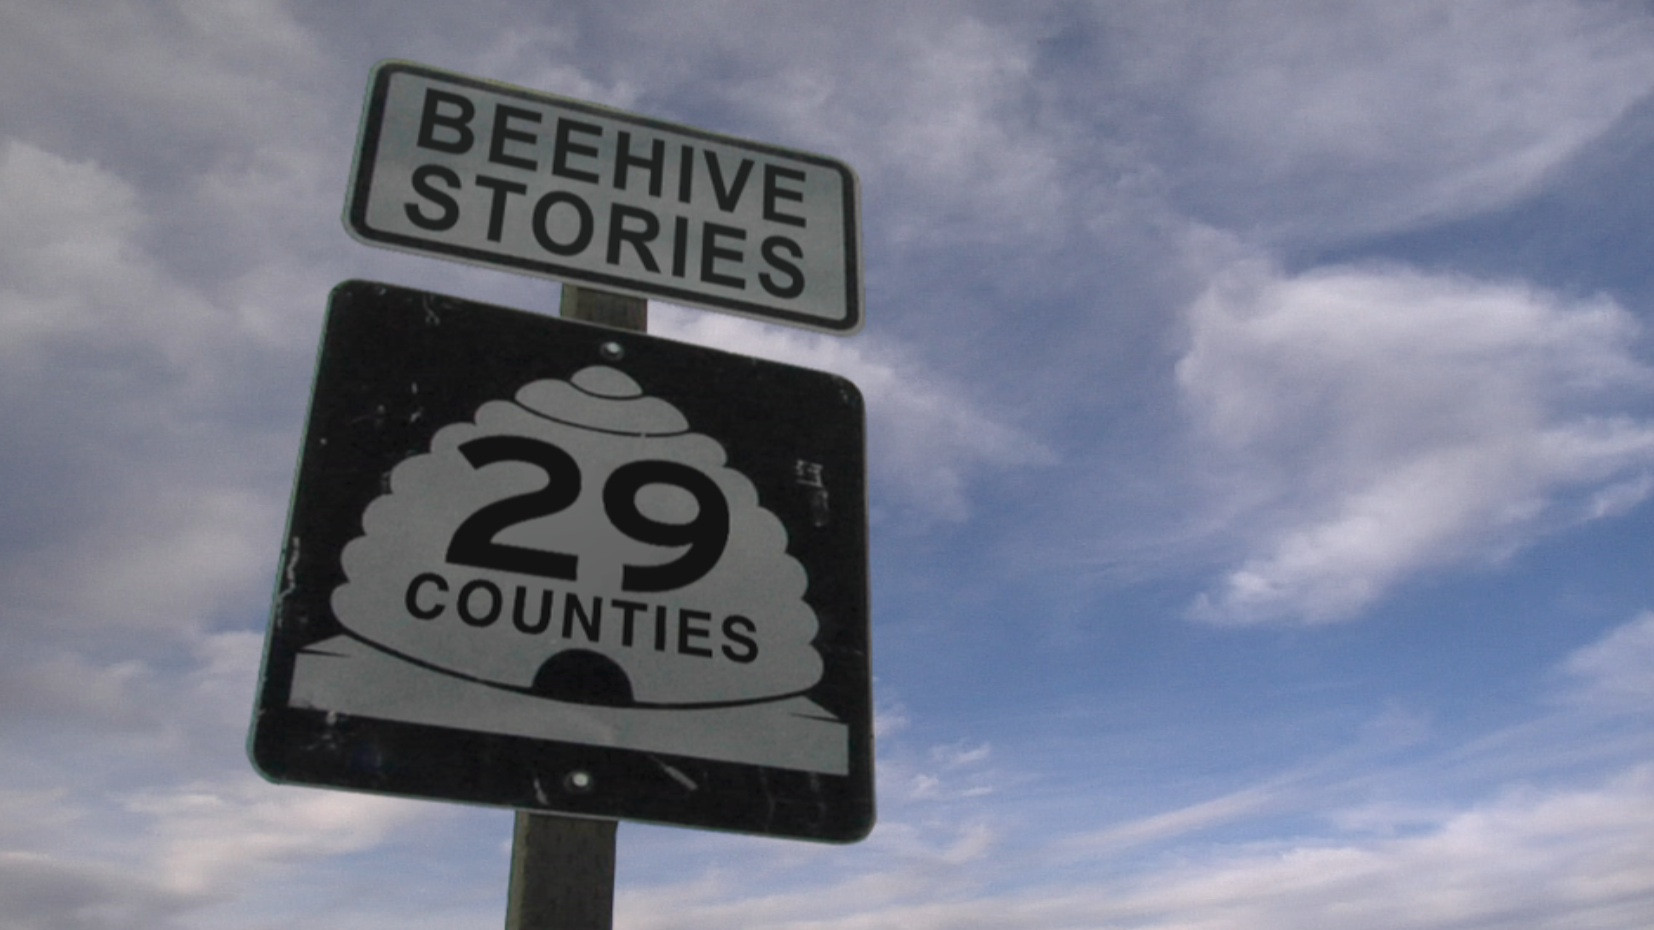 BEEHIVE STORIES Creator/Producer KBYU Eleven, 2009 - 2018